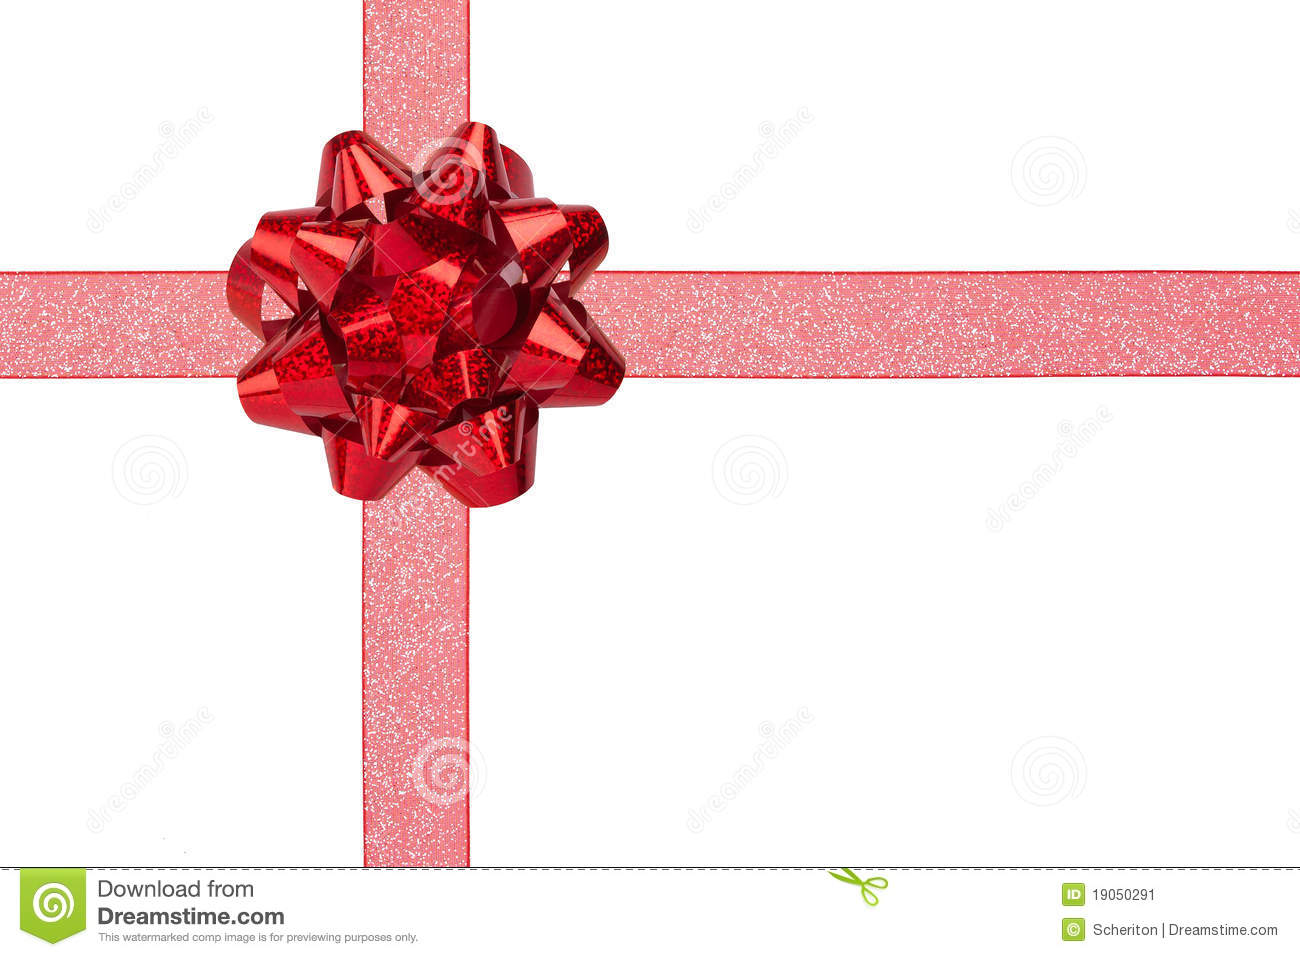 Gift wrap with red sparkly ribbon and bow stock image image of gift wrap with red sparkly ribbon and bow negle Gallery